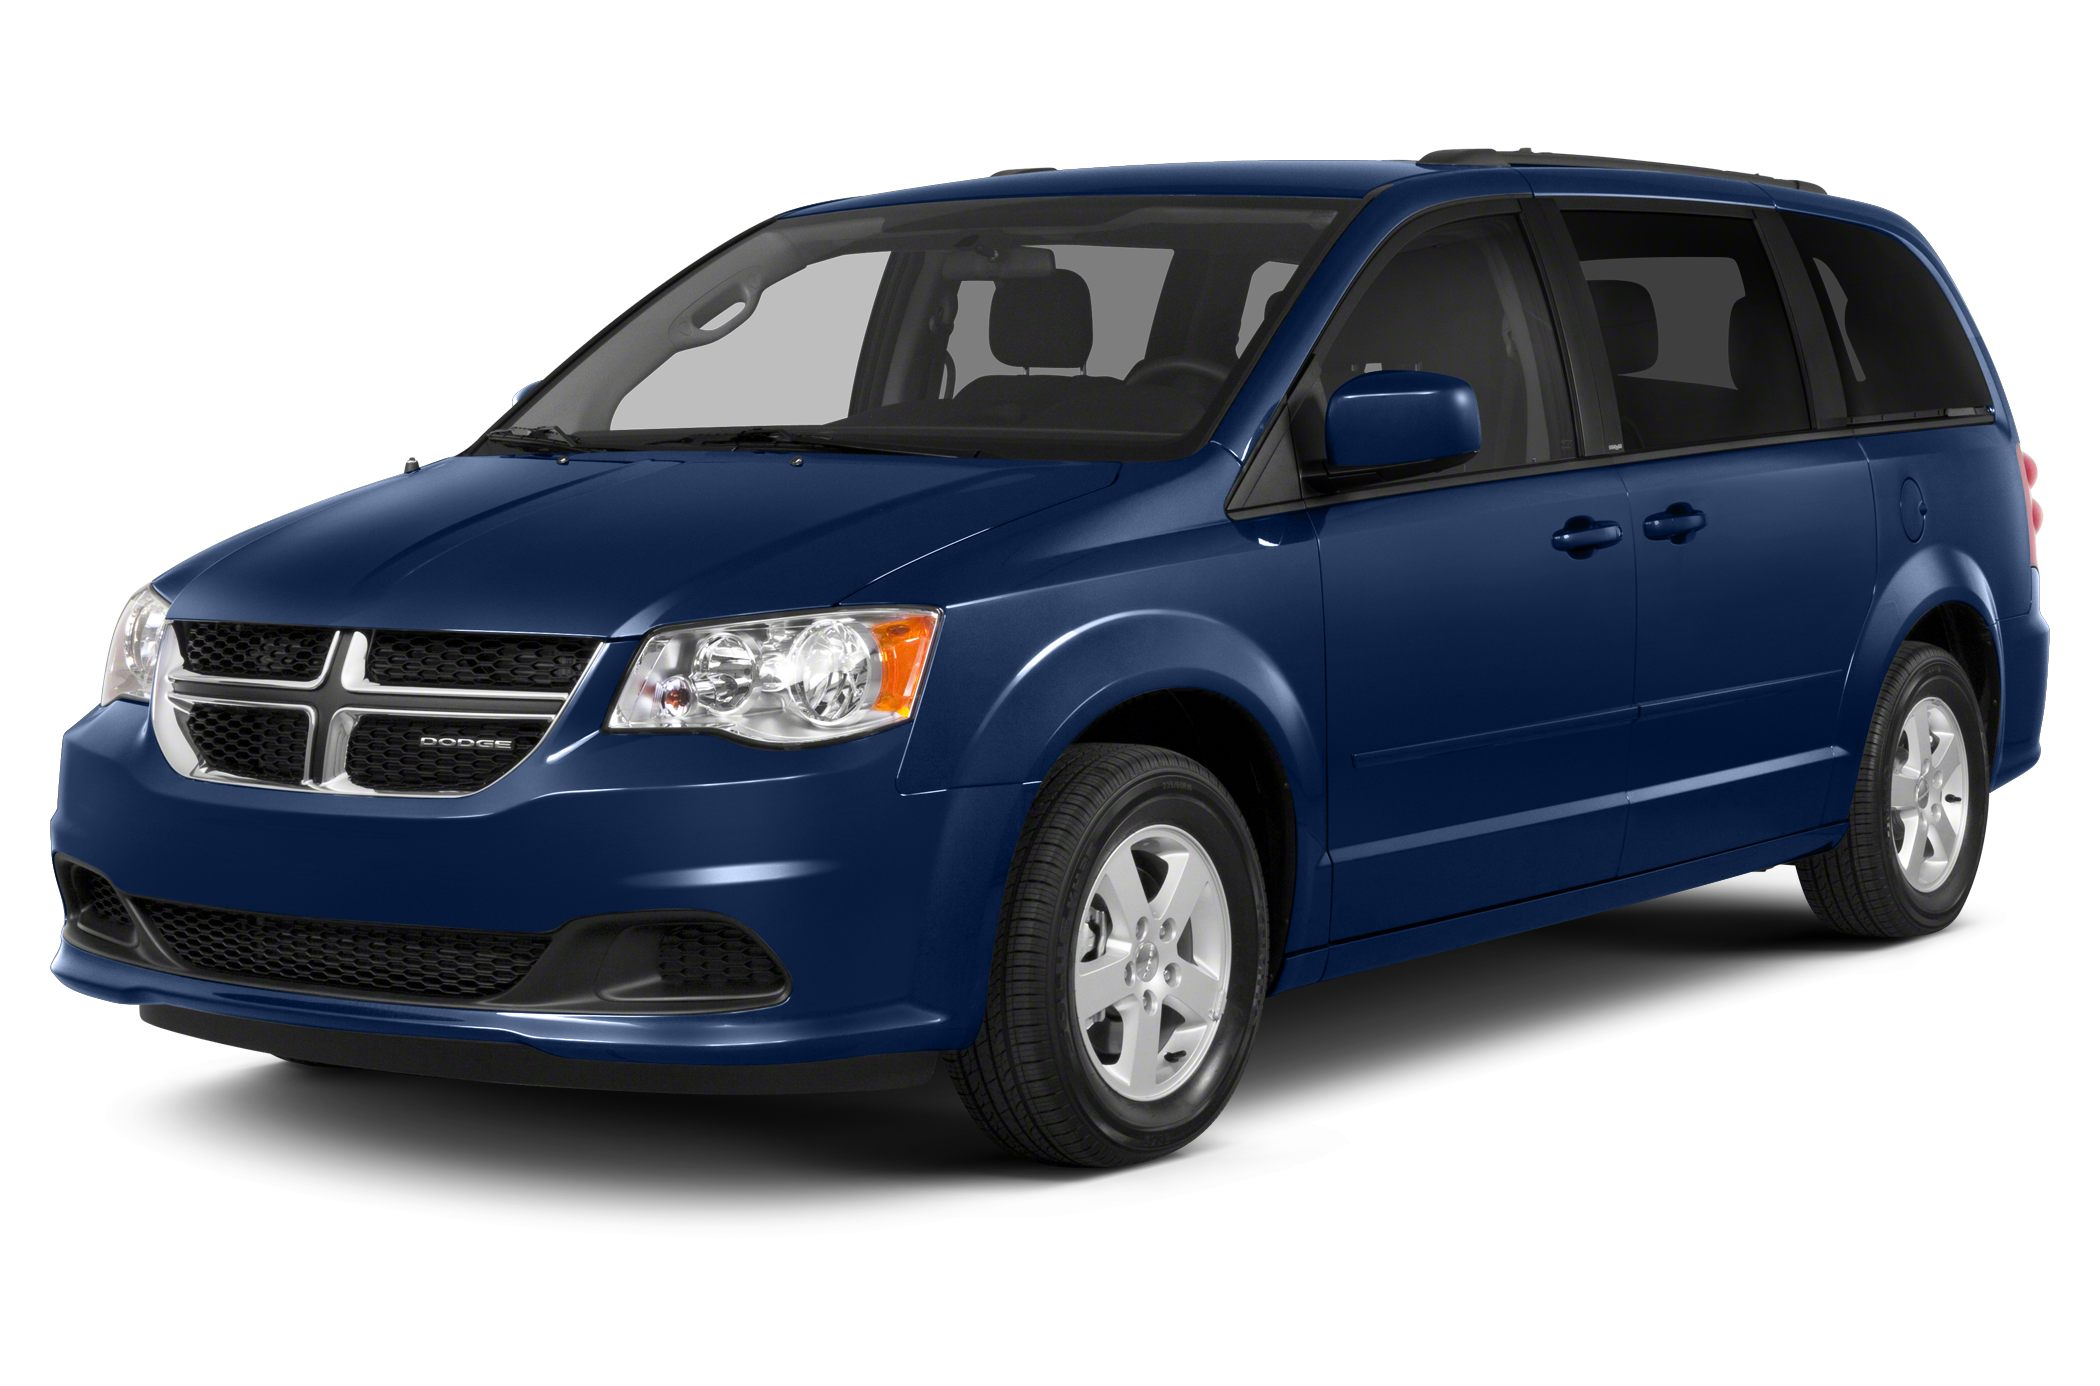 2013 Dodge Grand Caravan SXT Minivan for sale in Bakersfield for $17,999 with 61,845 miles